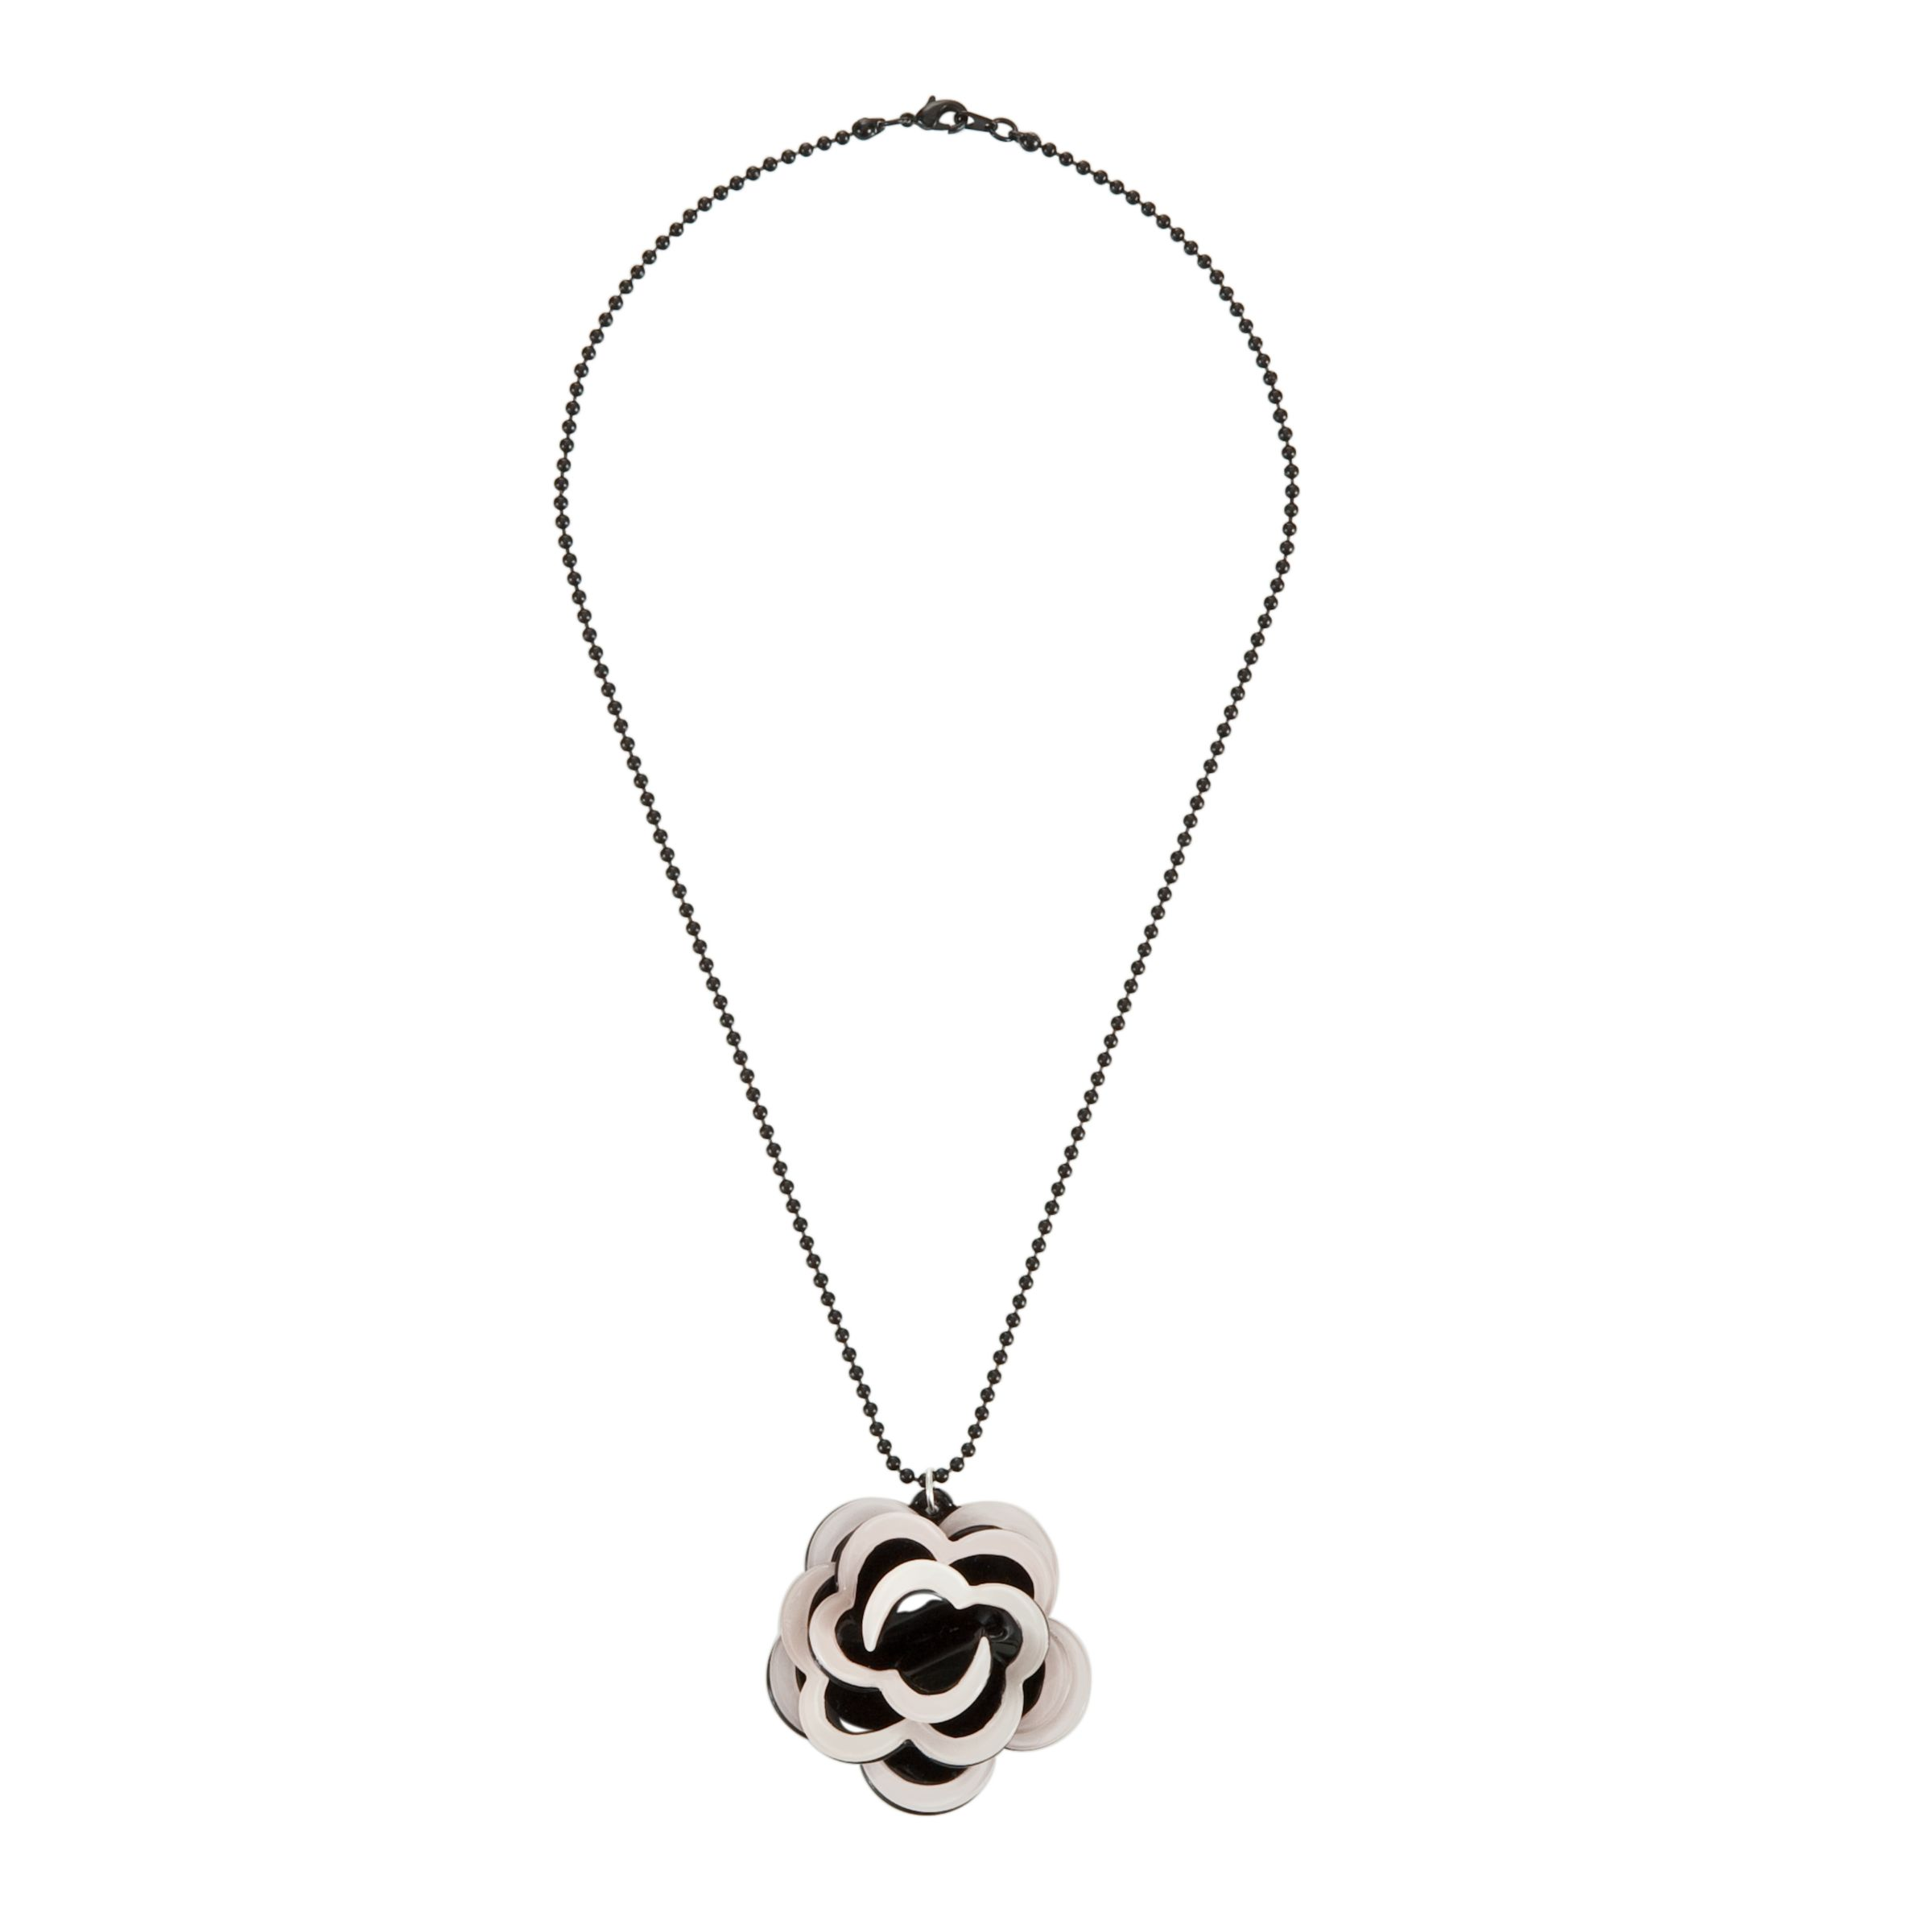 Big BabyTwo Tone Flower Necklace, Nude/Black